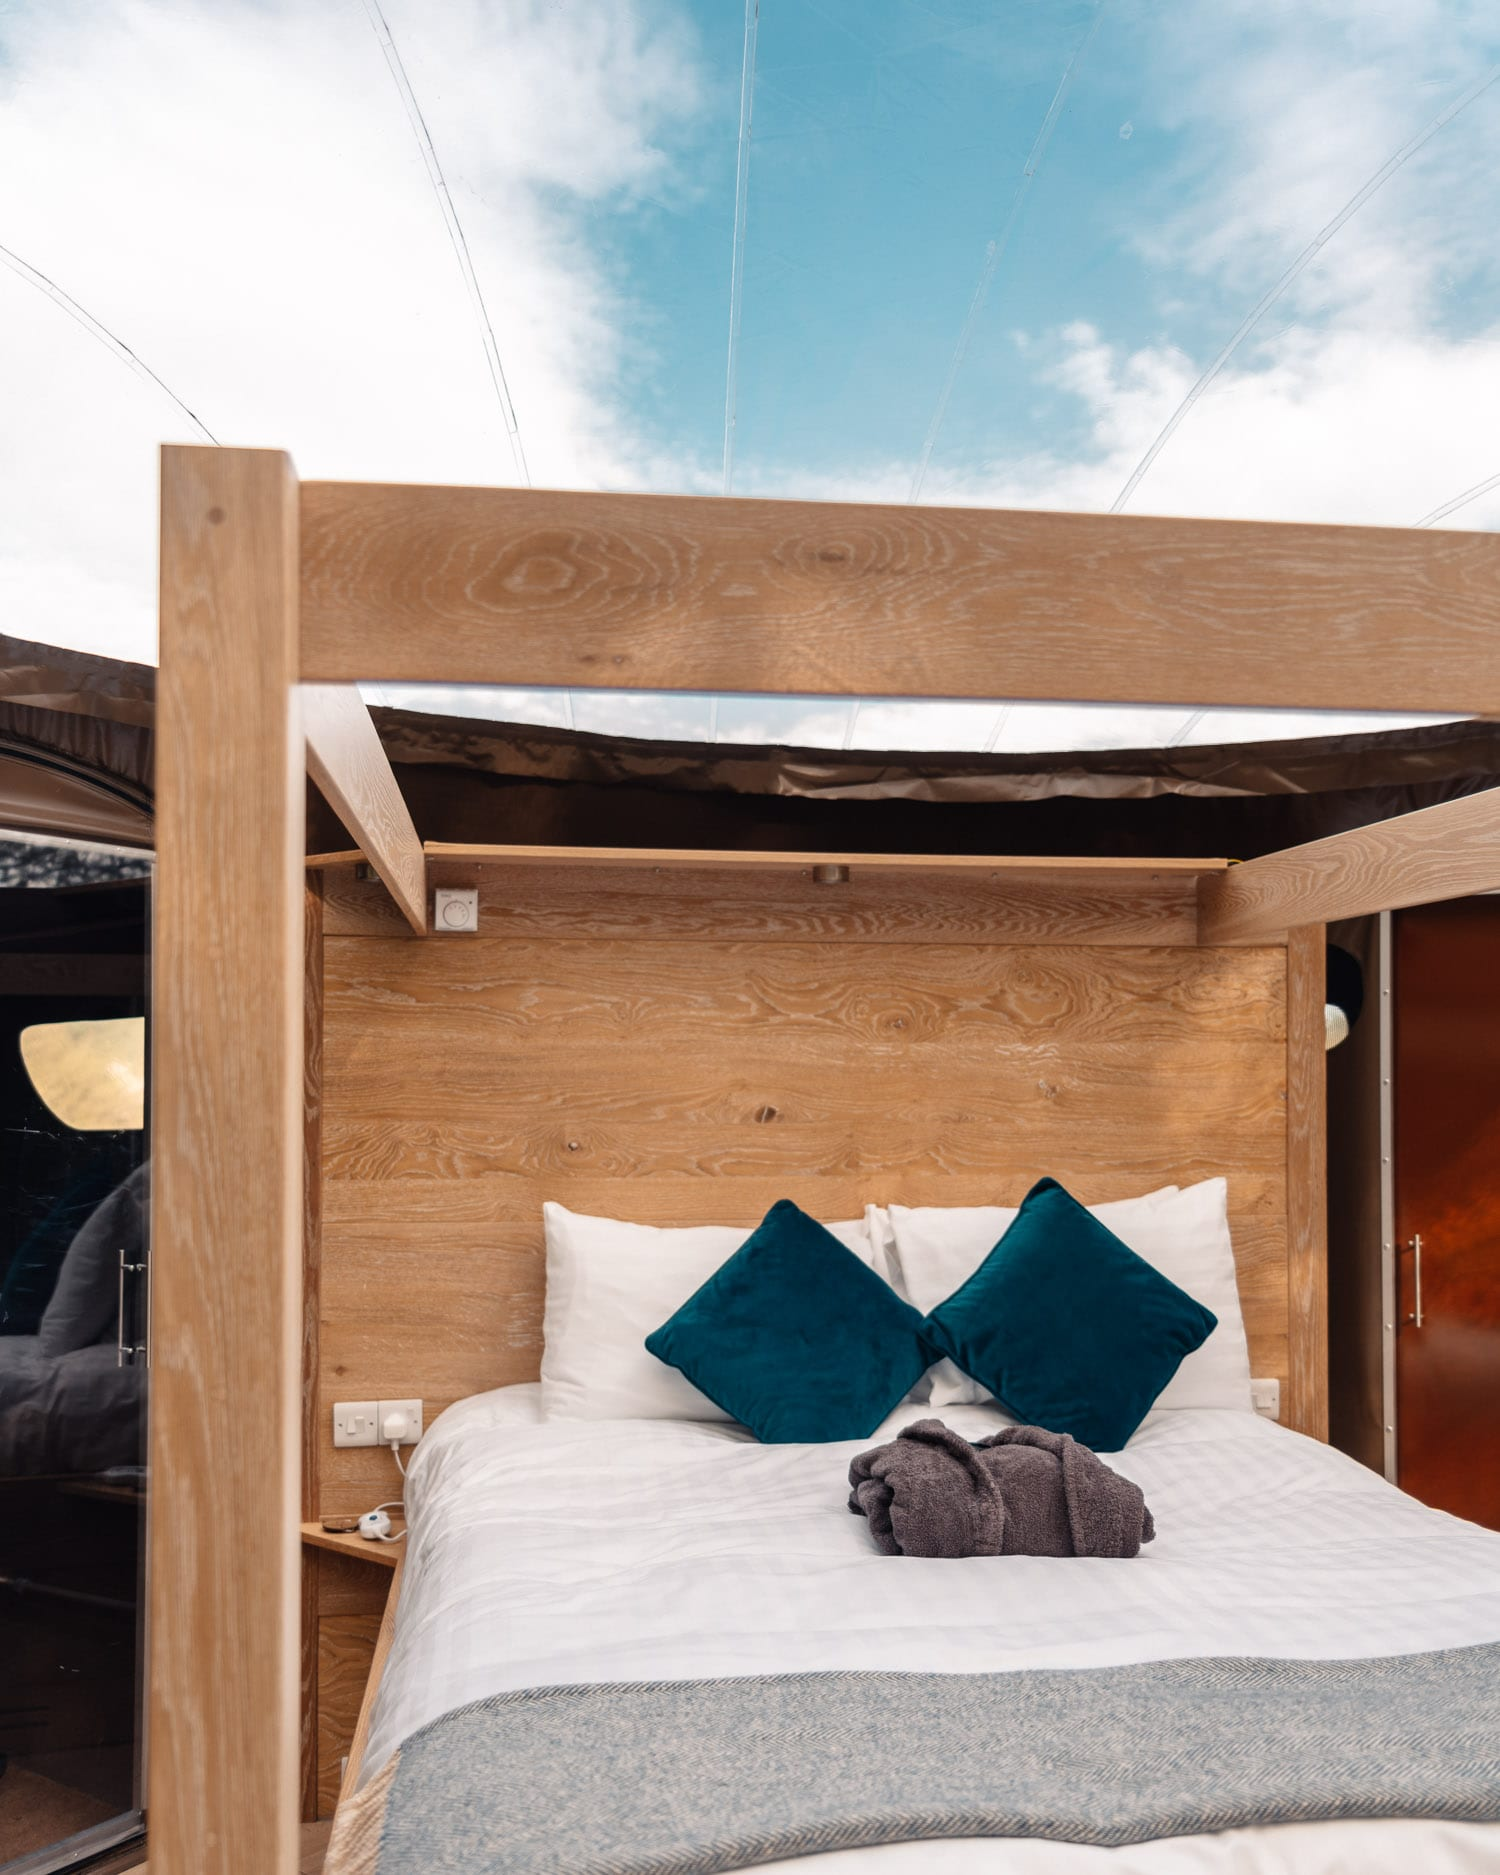 Four-poster Bed at Finn Lough Bubble Domes Hotel in Northern Ireland